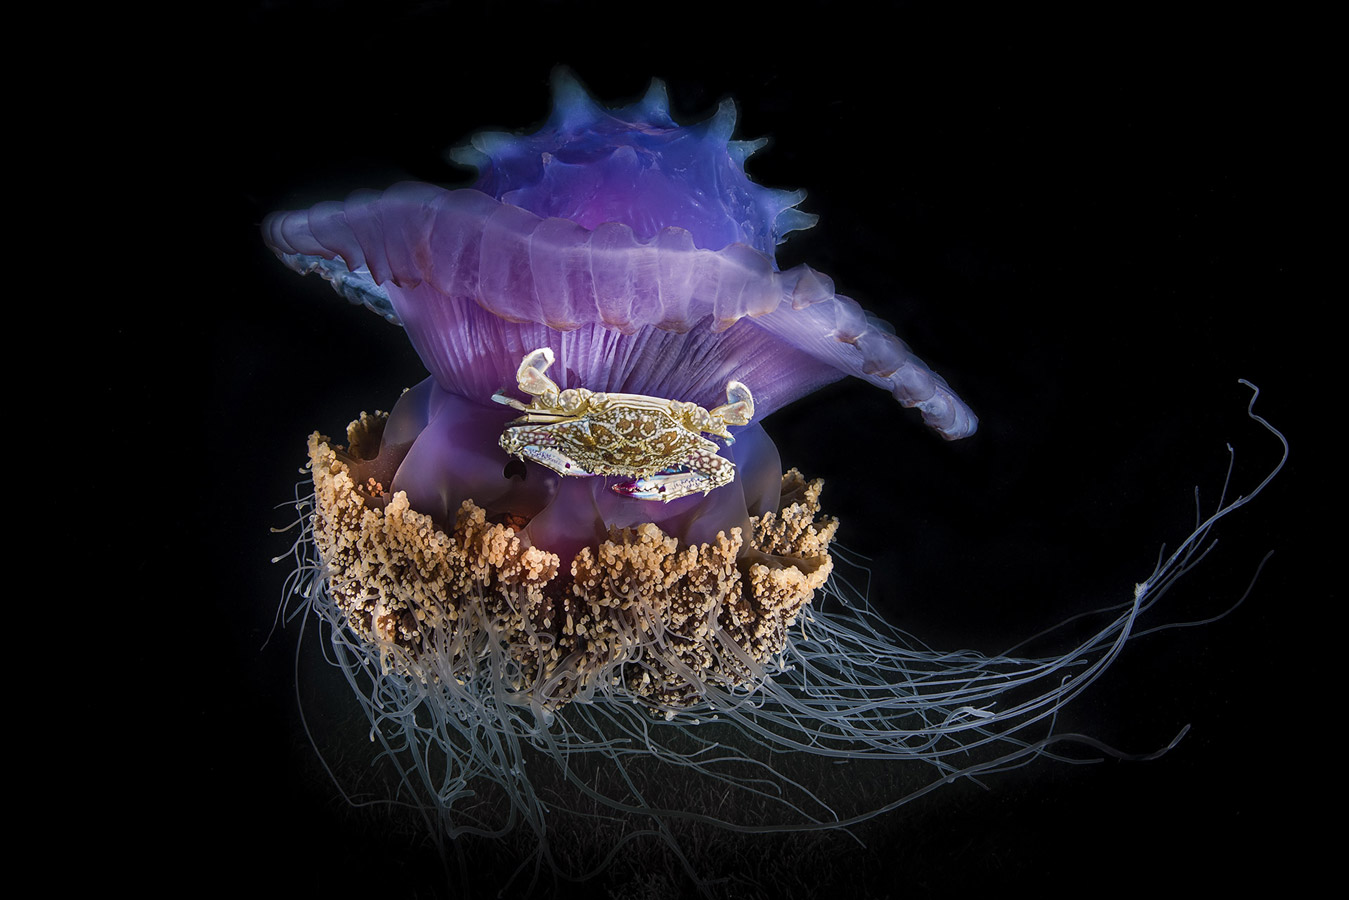 Underwater spaceship, © Vania Kam, Hong Kong, Highly Honored Ocean, Nature's Best Photography Asia